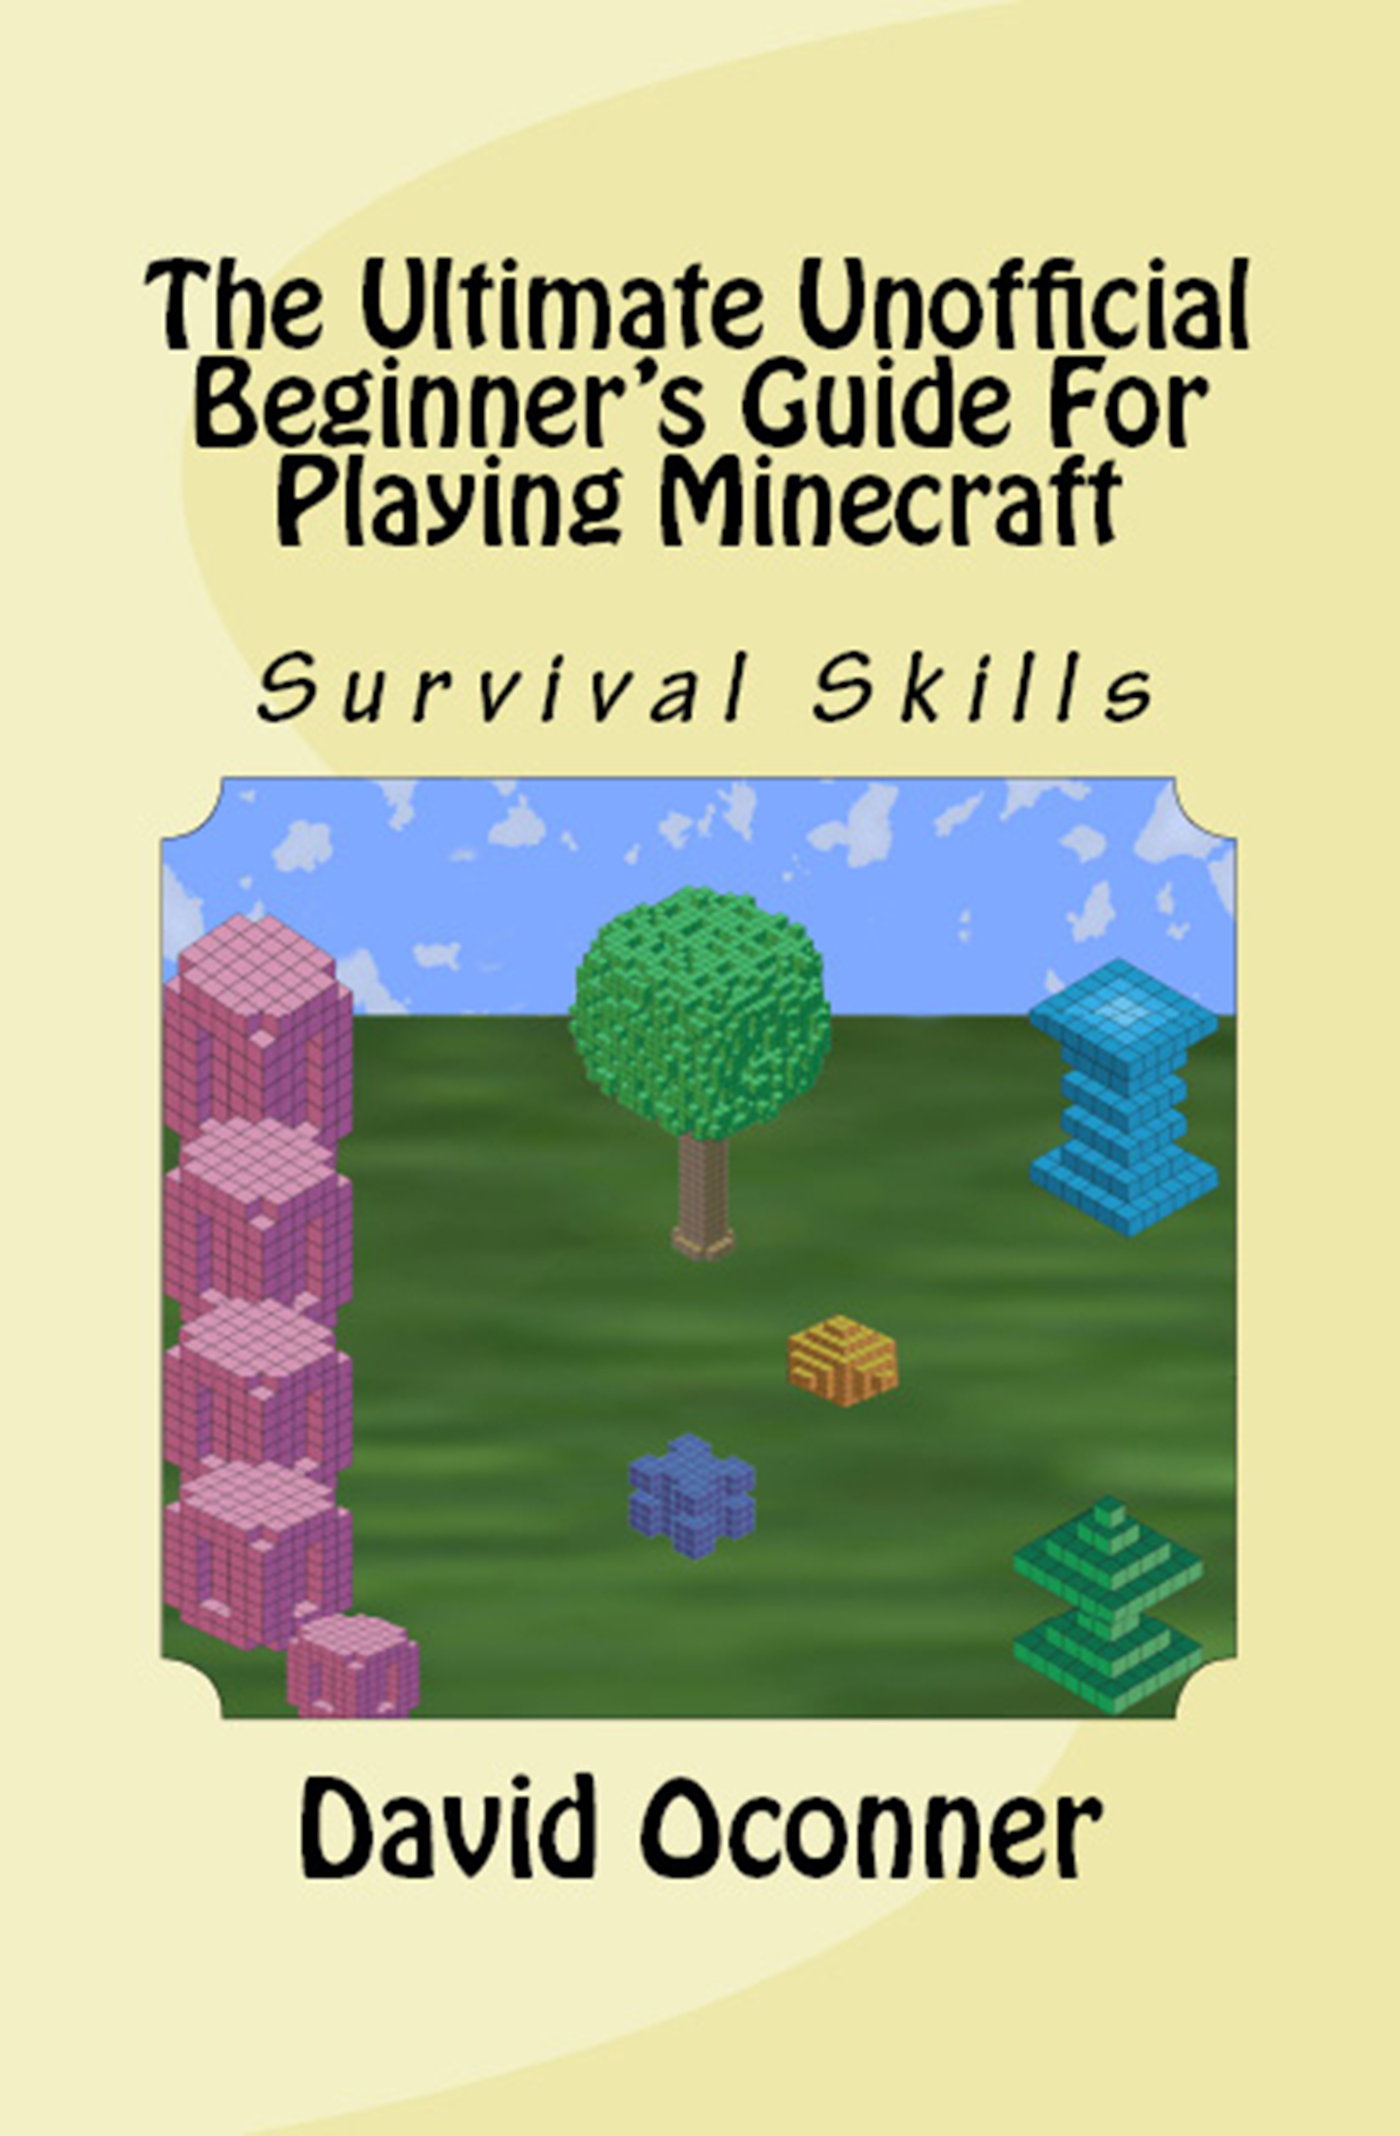 The Ultimate Unofficial Beginner's Guide For Playing Minecraft, an Ebook by  David Oconner